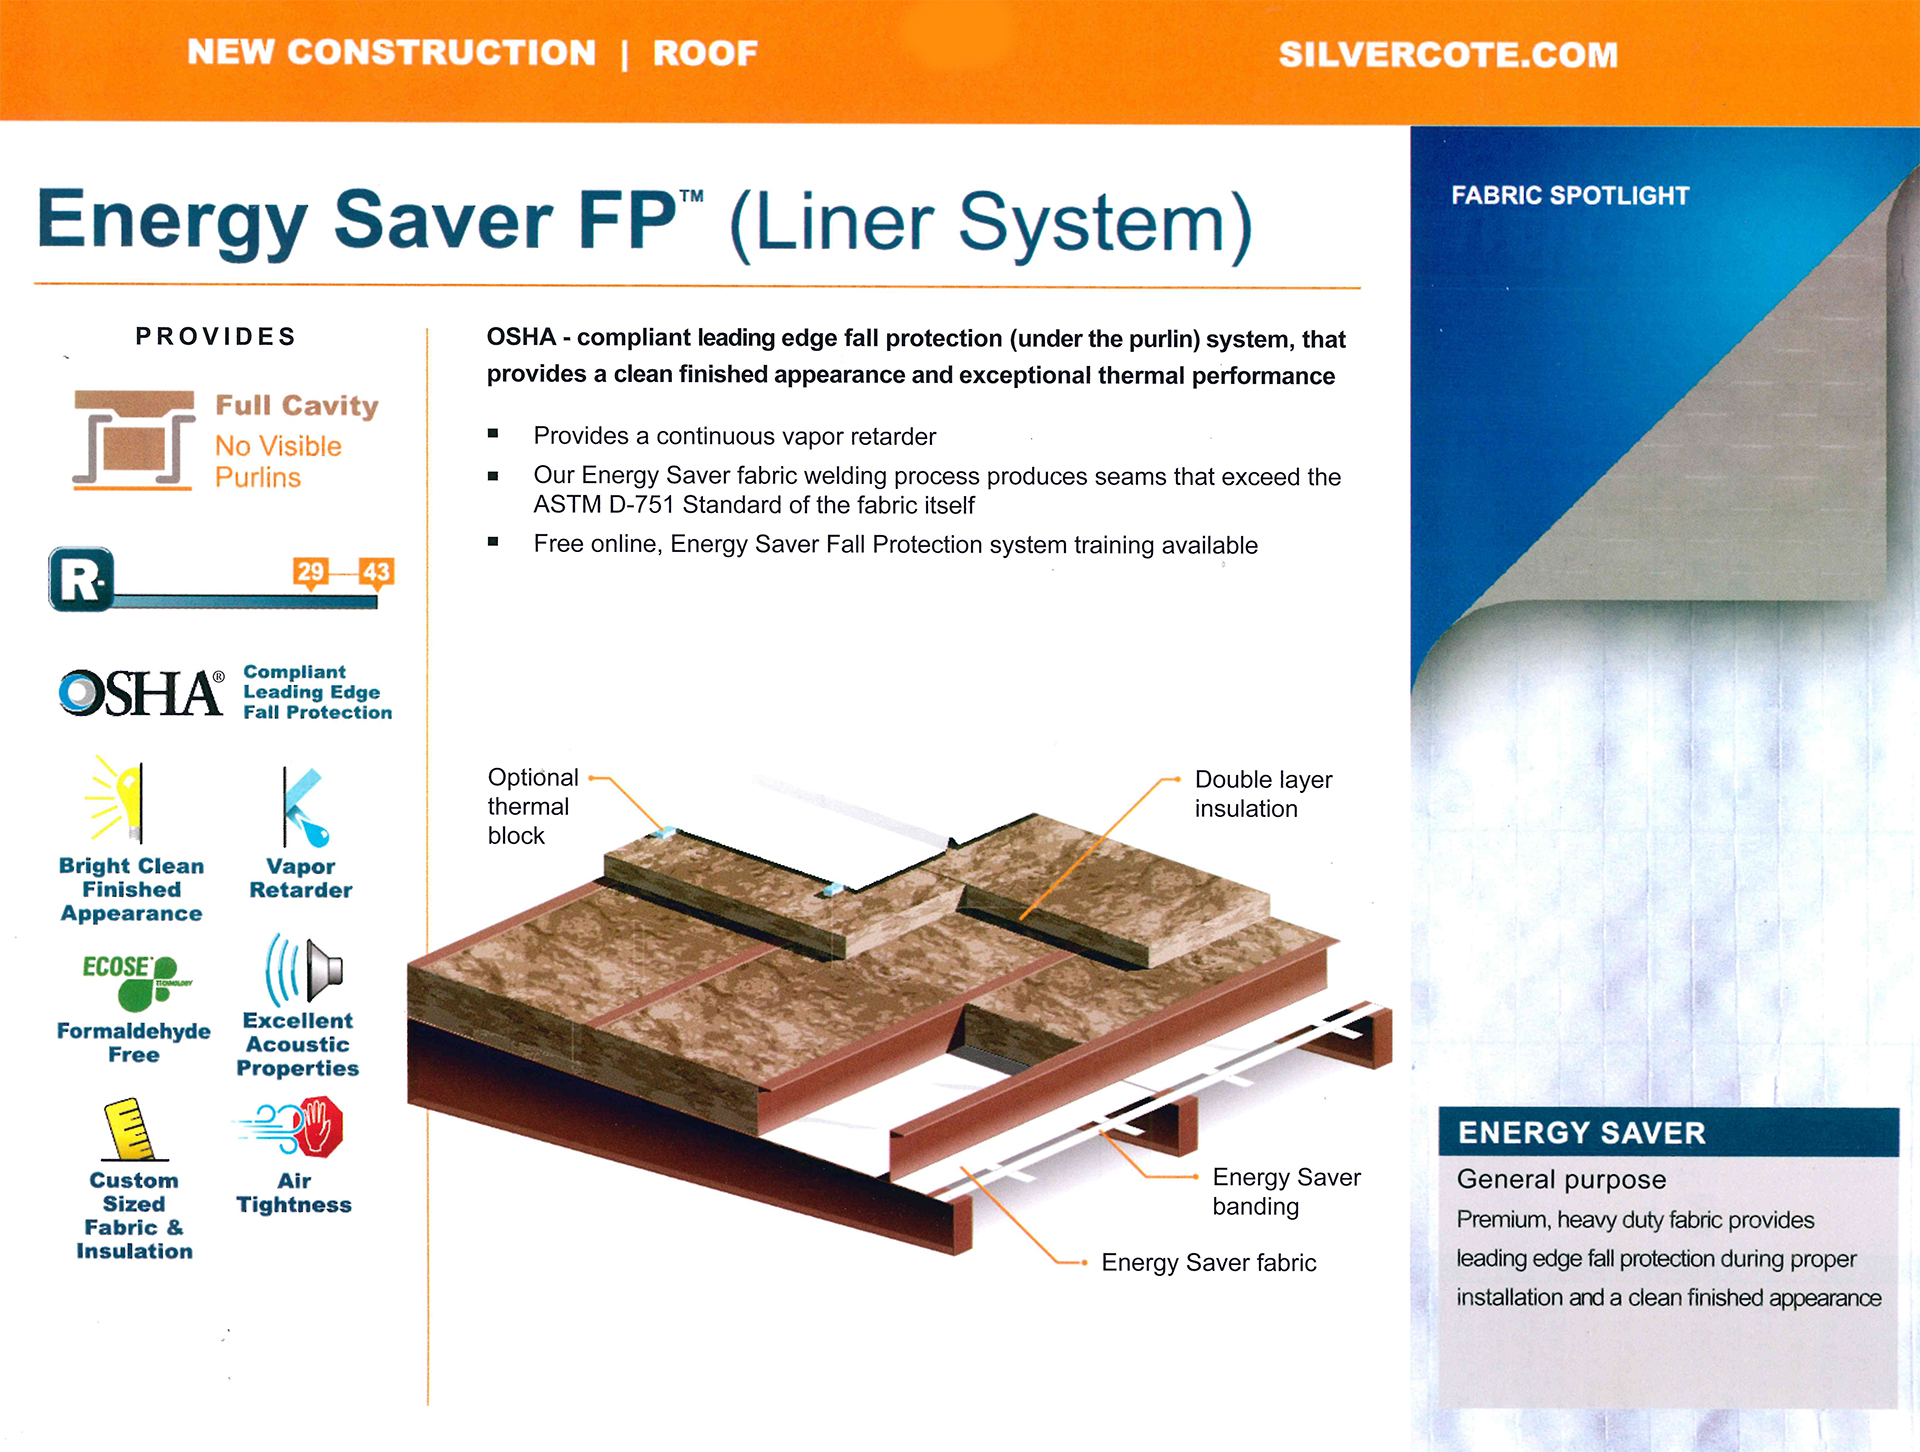 Energy Saver FP Liner Panel